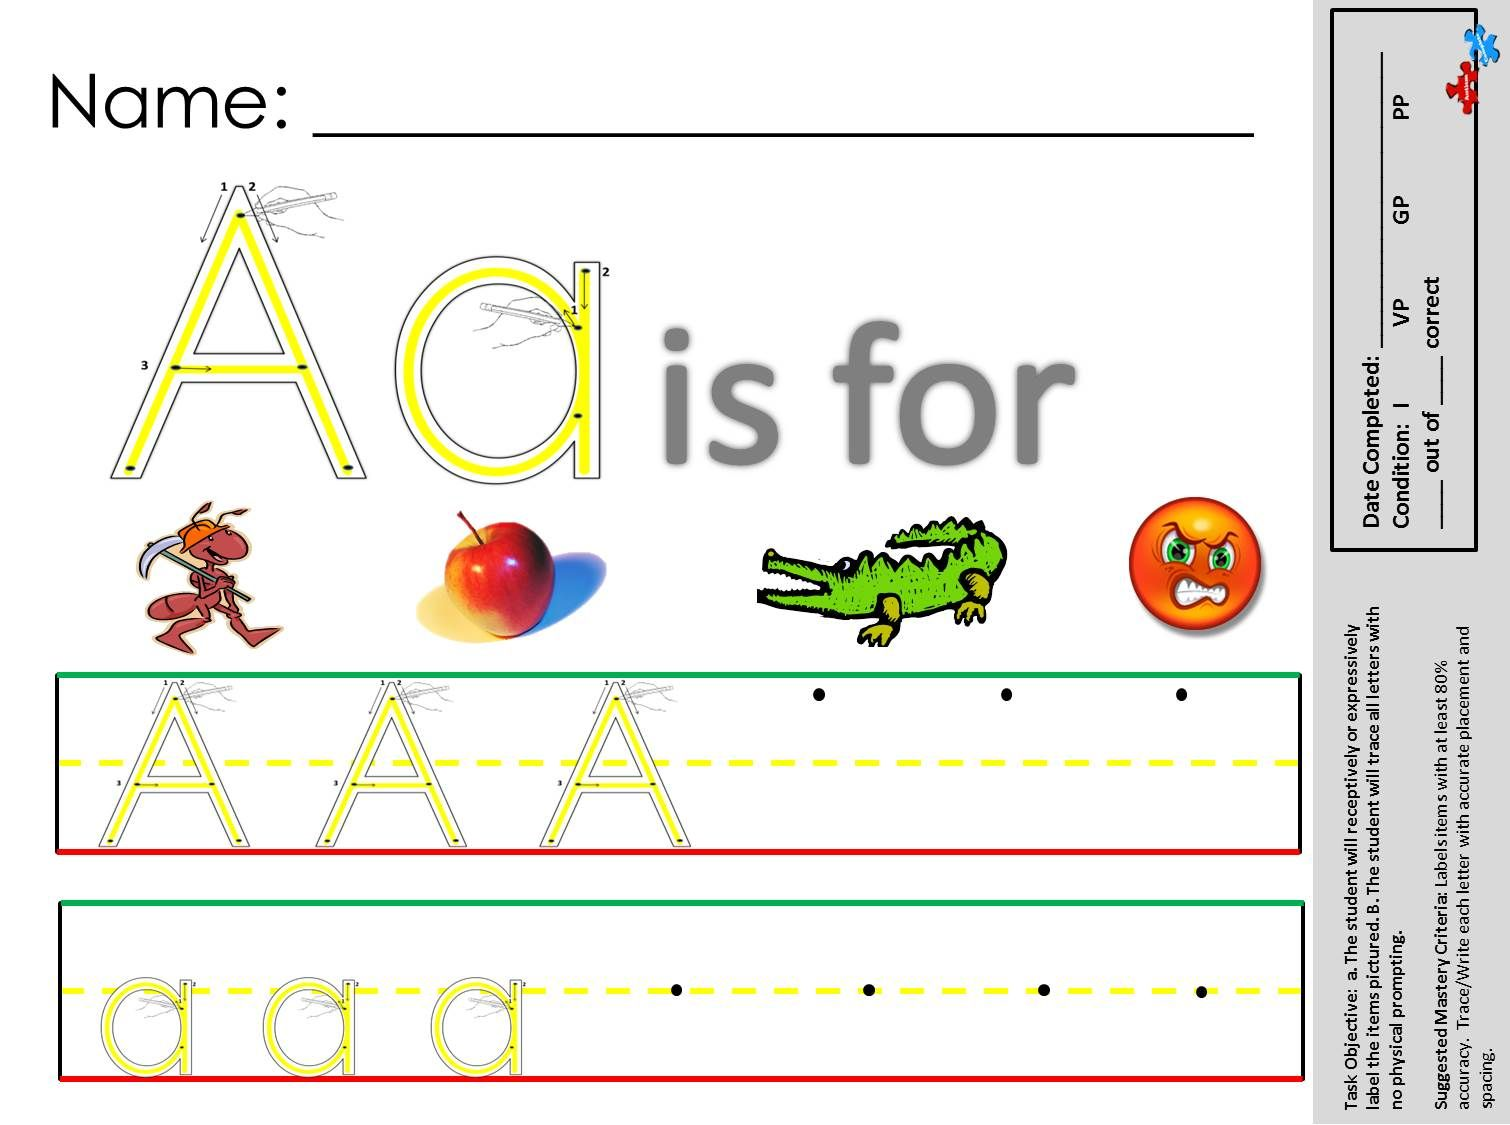 medium resolution of Find these and other great worksheets at autismcomplete.com   Autism  teaching